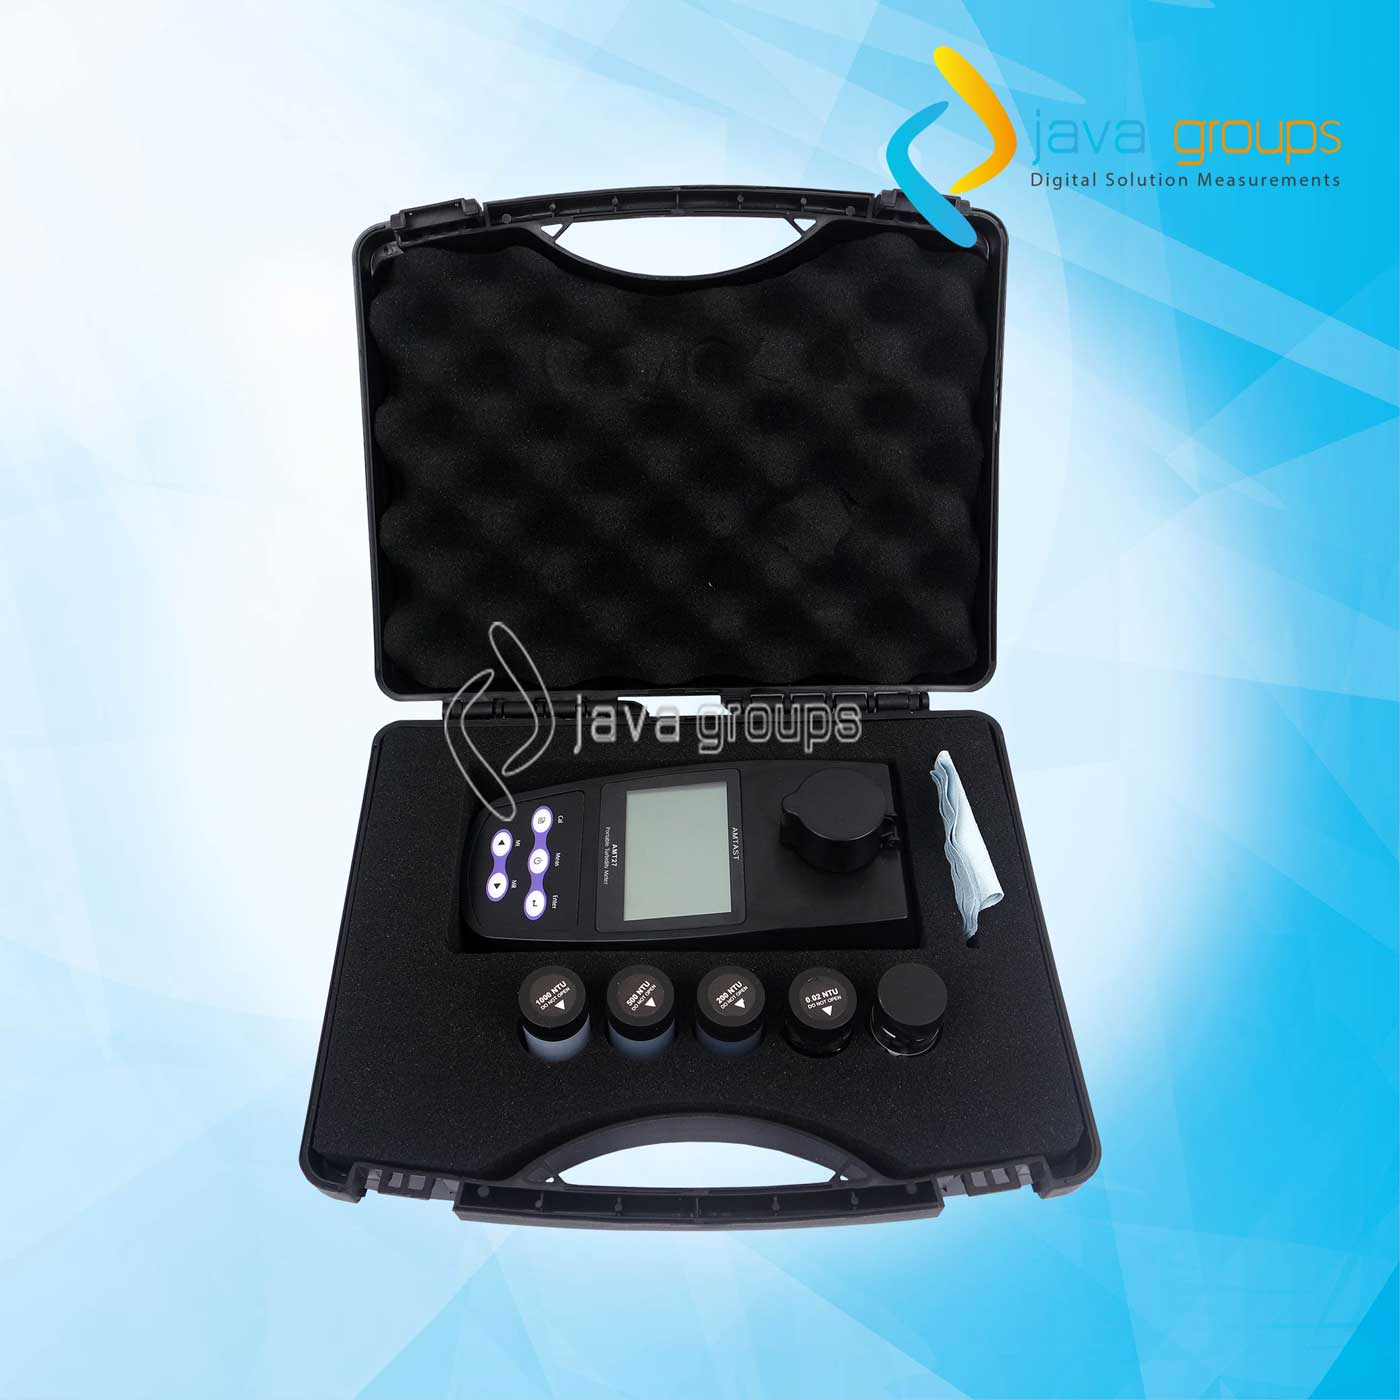 Alat Ukur Turbidity Meter Digital AMTAST AMT27